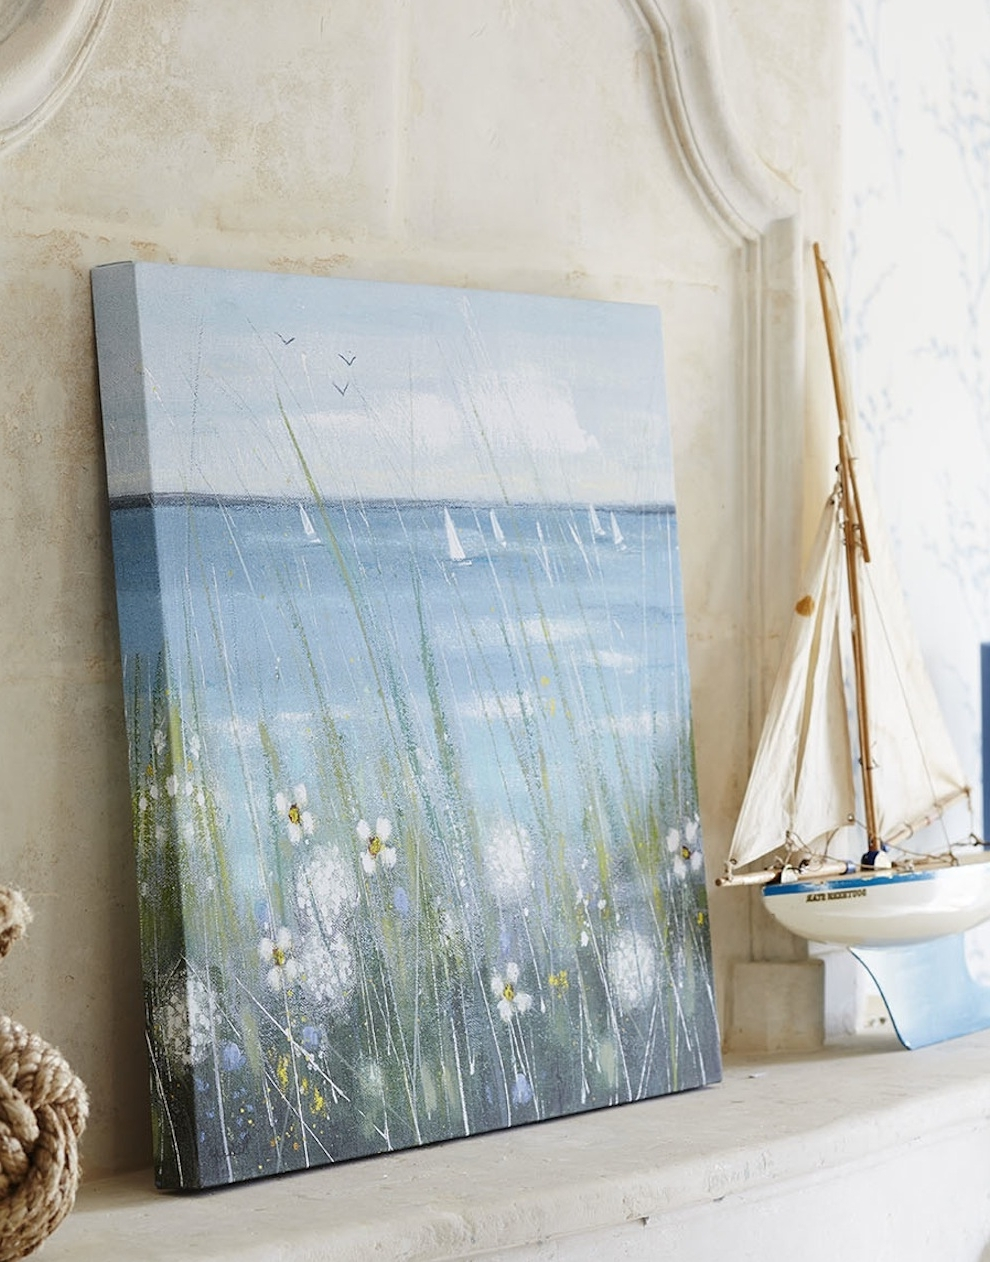 Newest 4 Ways To Wake Up Your Walls – The Laura Ashley Blog In Duck Egg Blue Wall Art (Gallery 7 of 15)